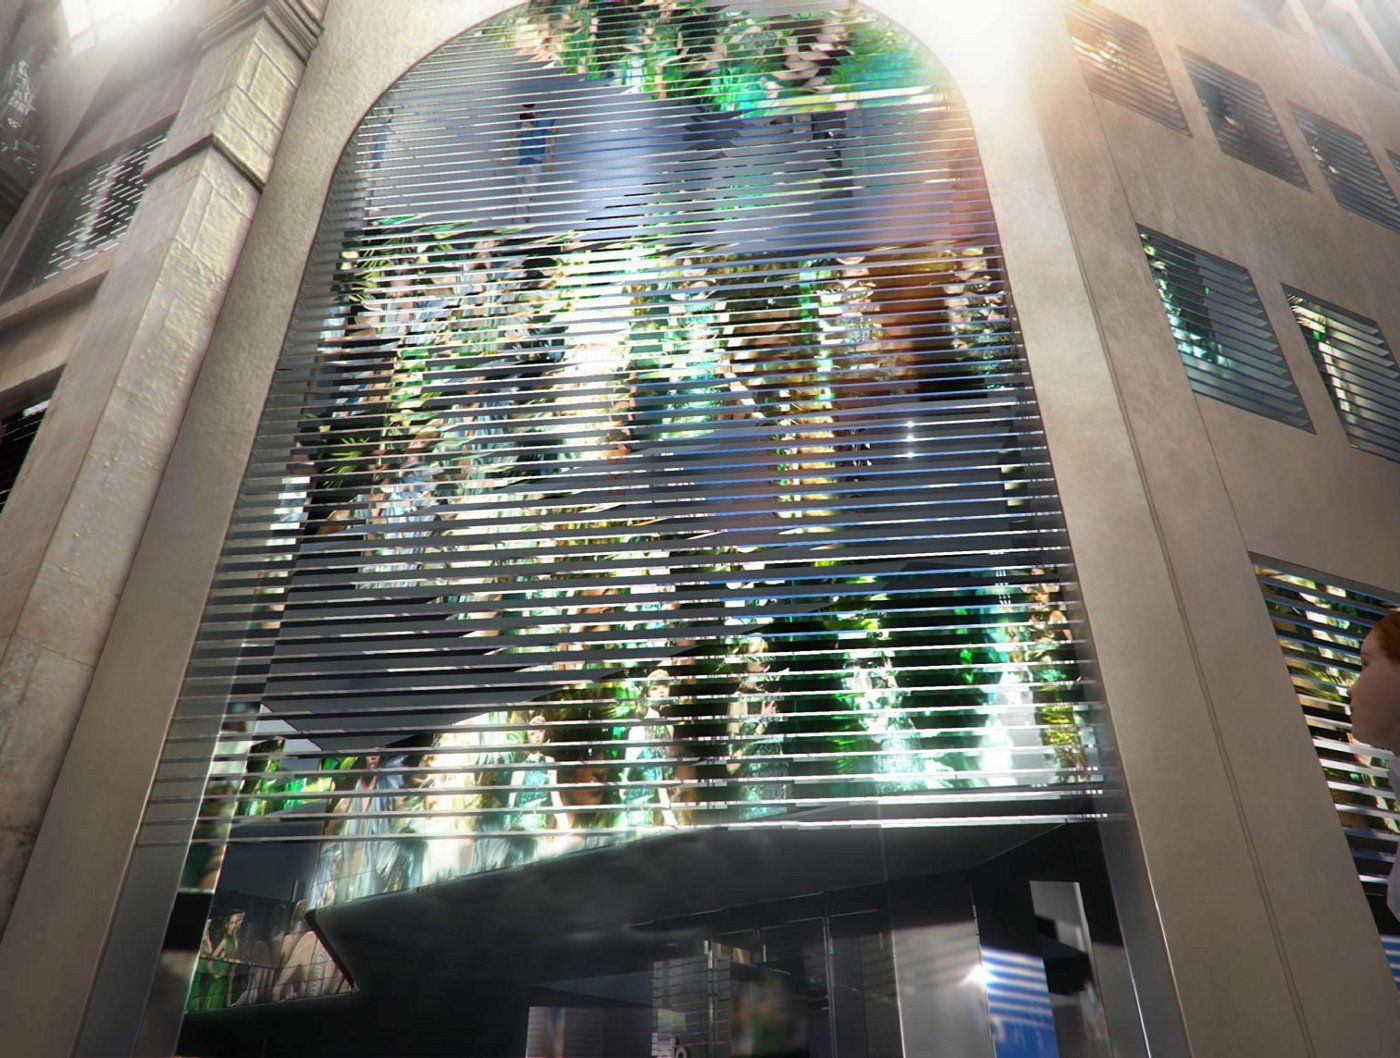 Excelsior Milano a Store dedicated to Fashion,Food and Design